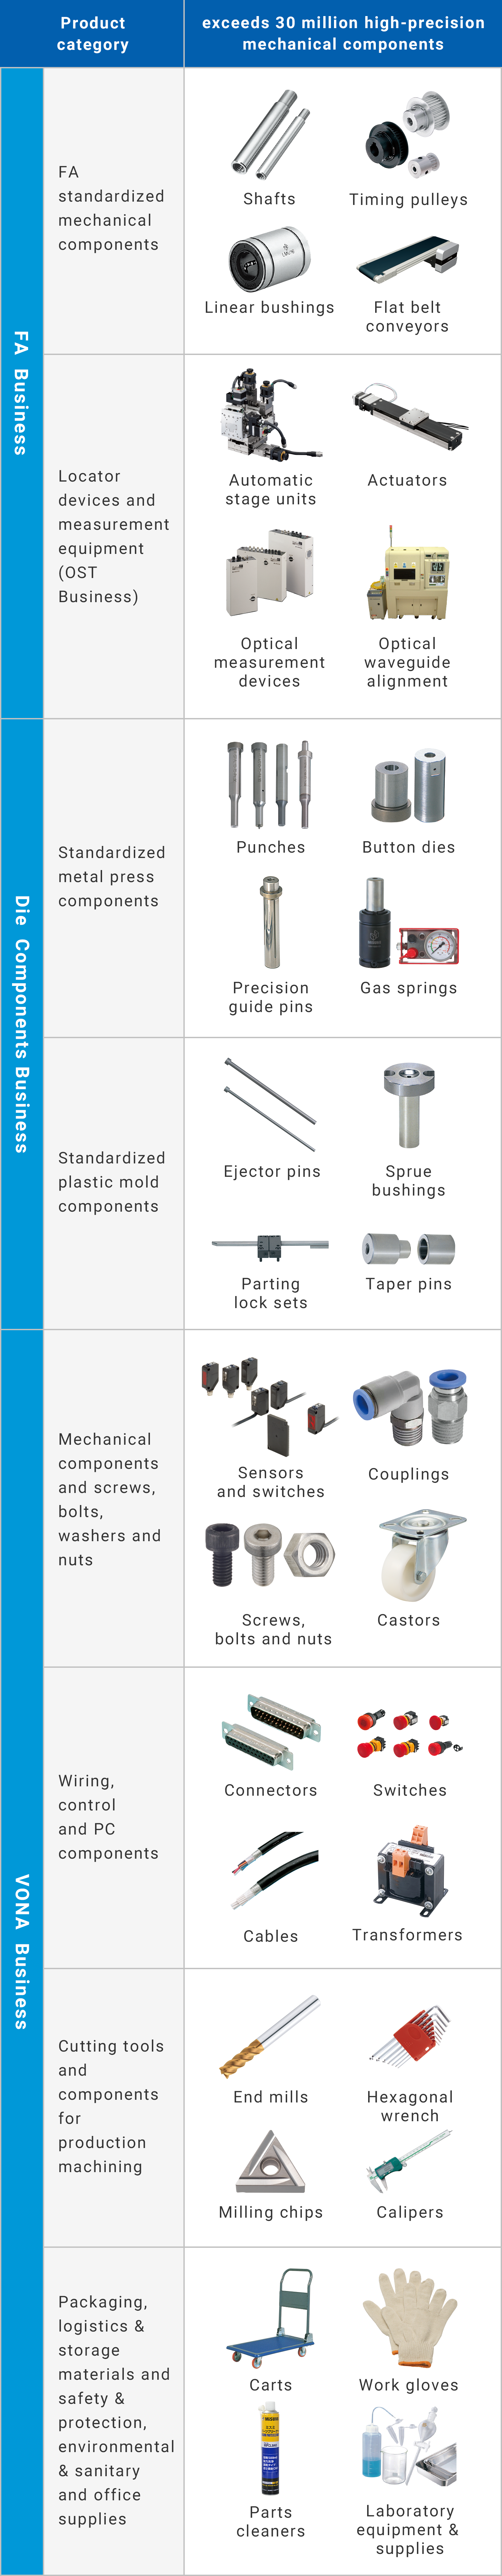 Major Products Carried by the MISUMI Group